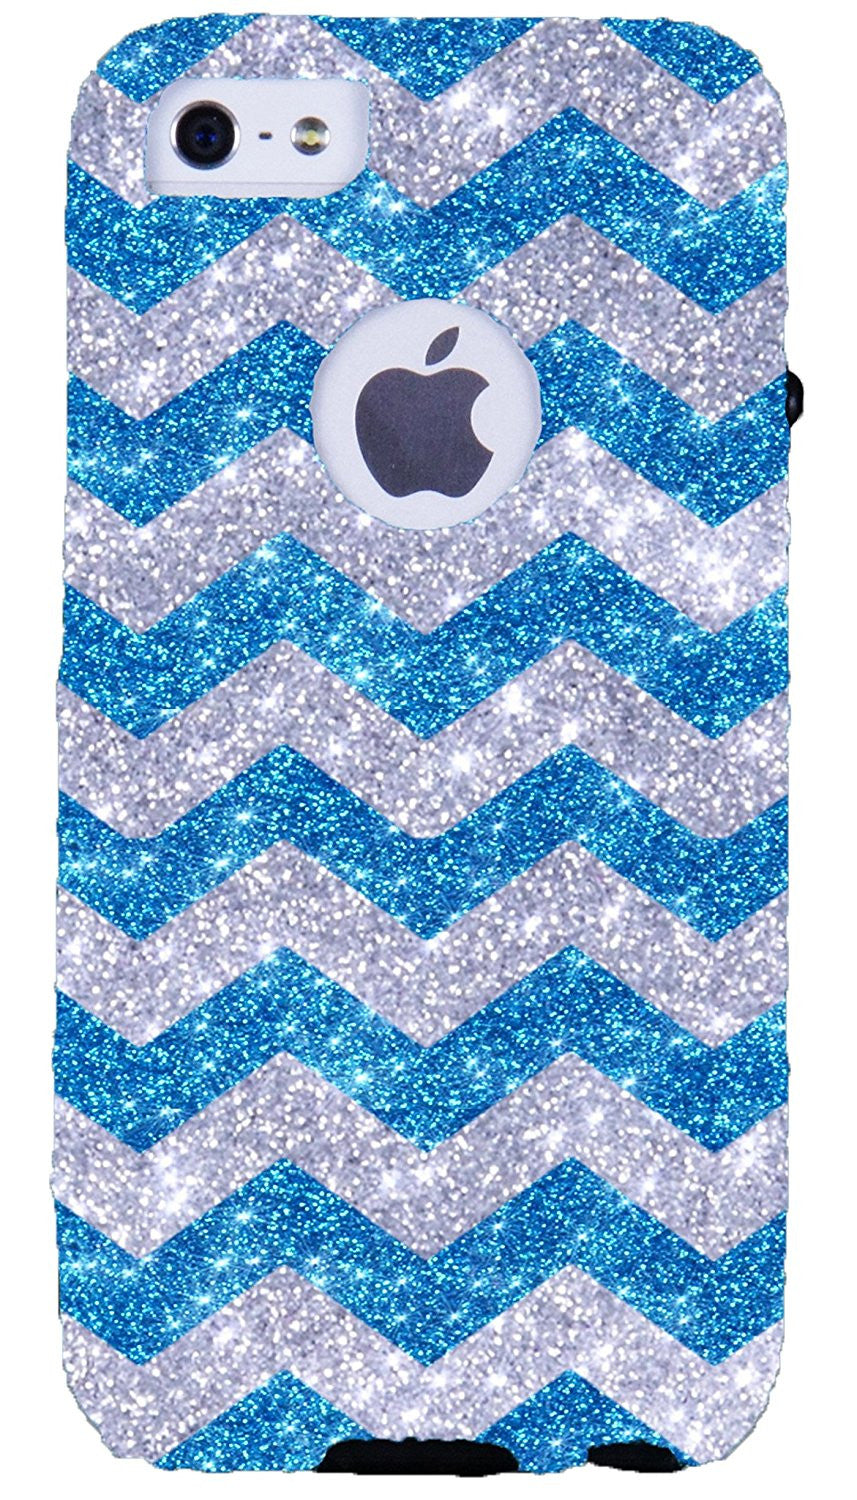 huge discount 2279a adc41 iPhone 5S Case - OtterBox iPhone 5 Commuter Series - Retail Packaging -  Glitter Silver Small Chevron Peacock/Black